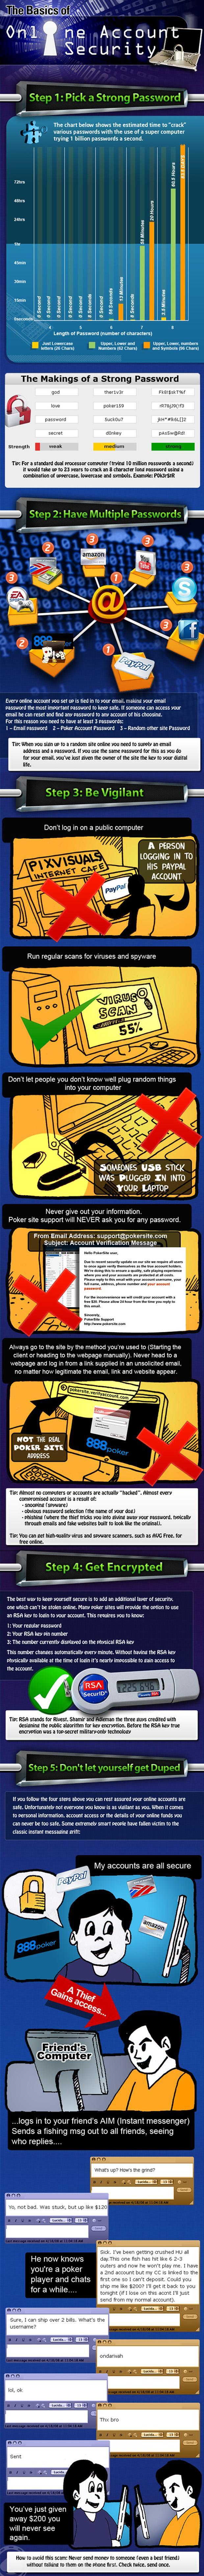 online security infographic2